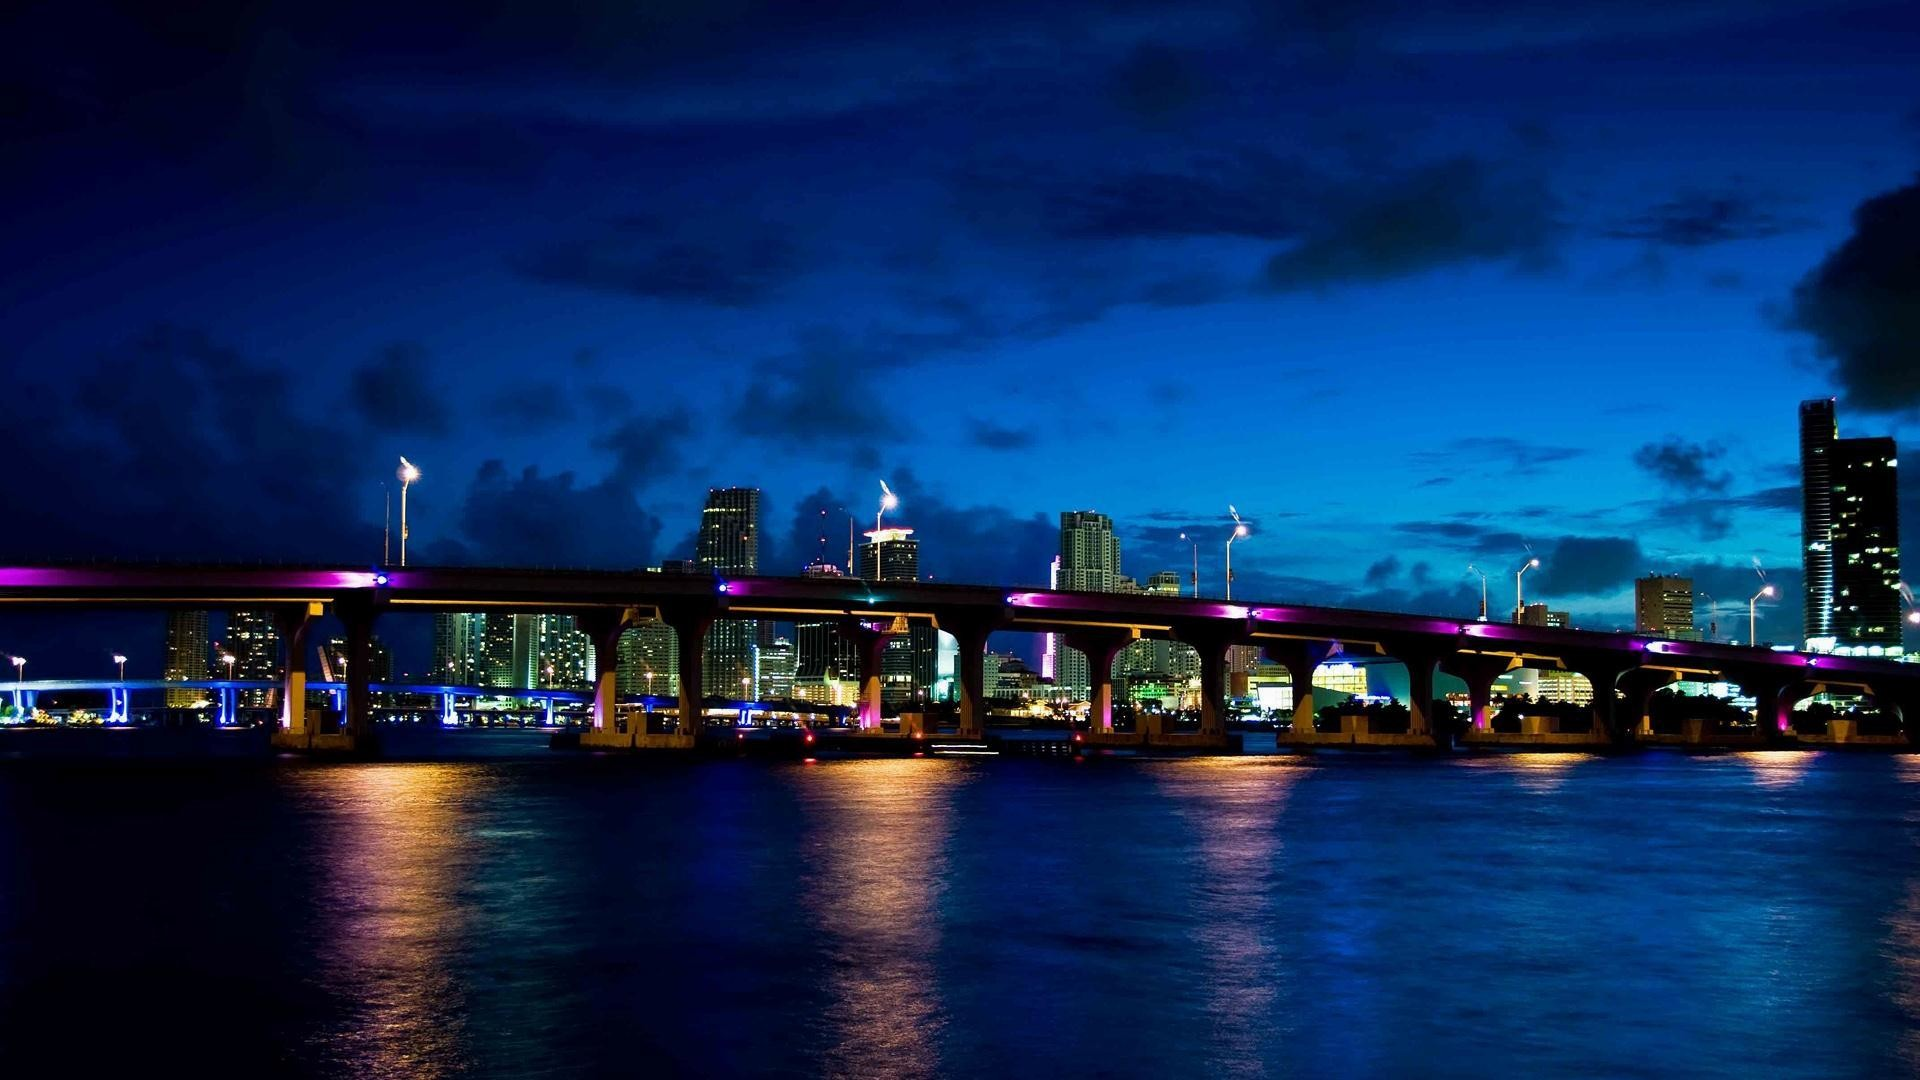 wallpaper.wiki-Miami-Backgrounds-PIC-WPE004520